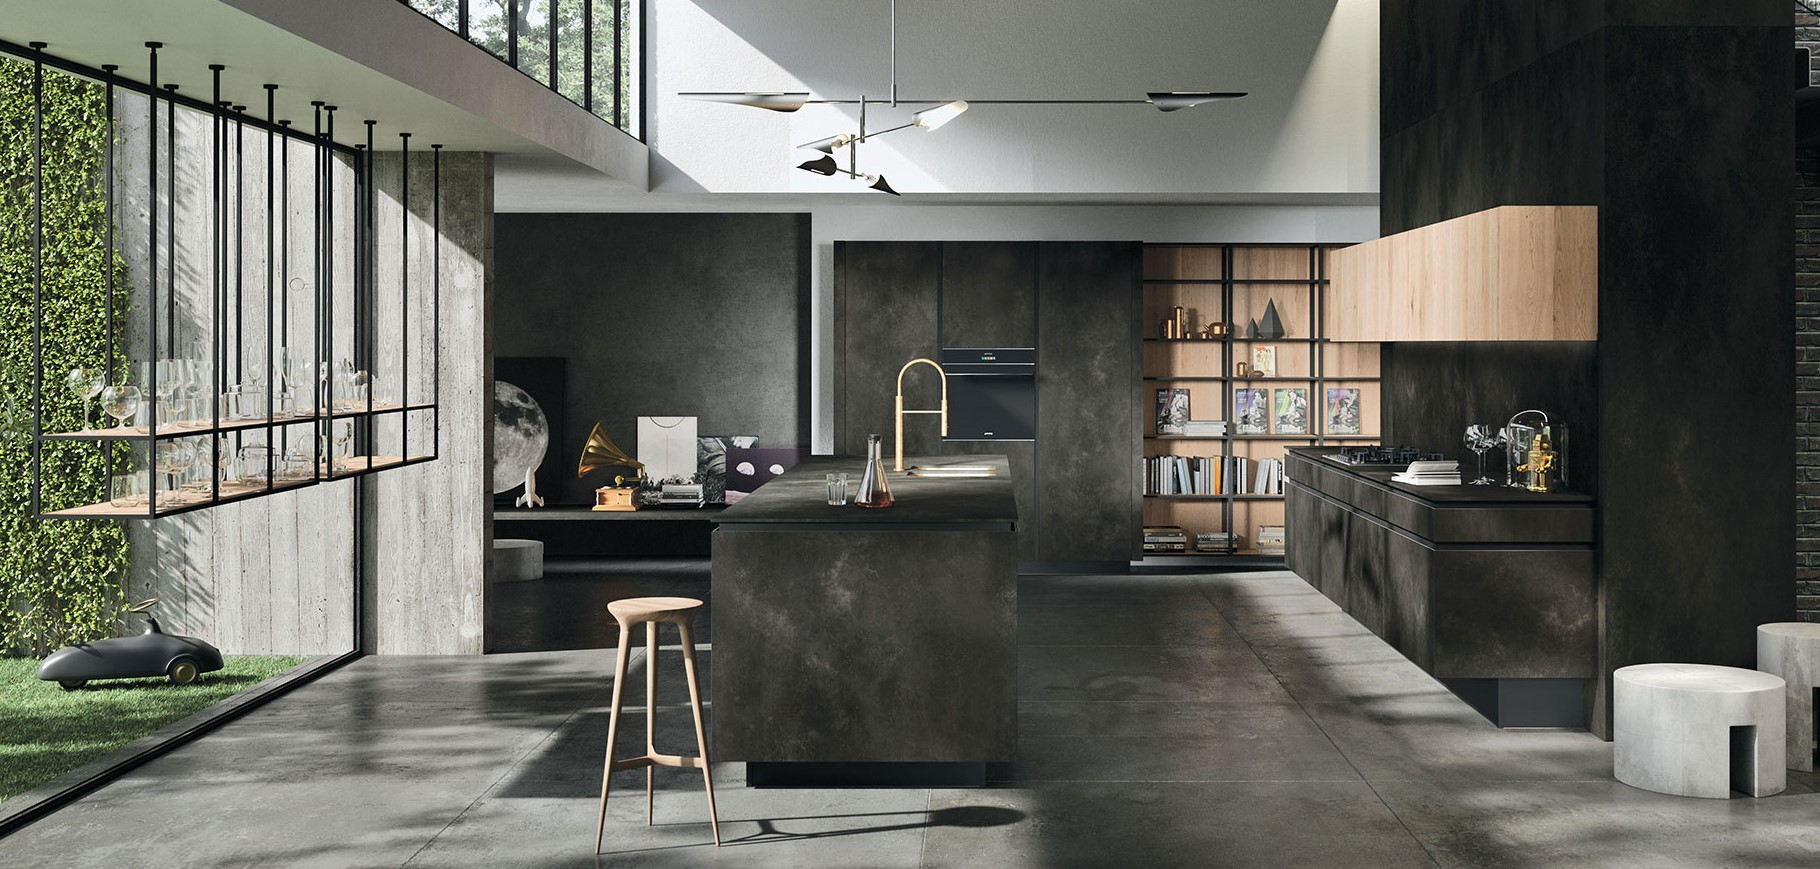 Cucine di design un viaggio tra stili e nuovi materiali for Stili cucine